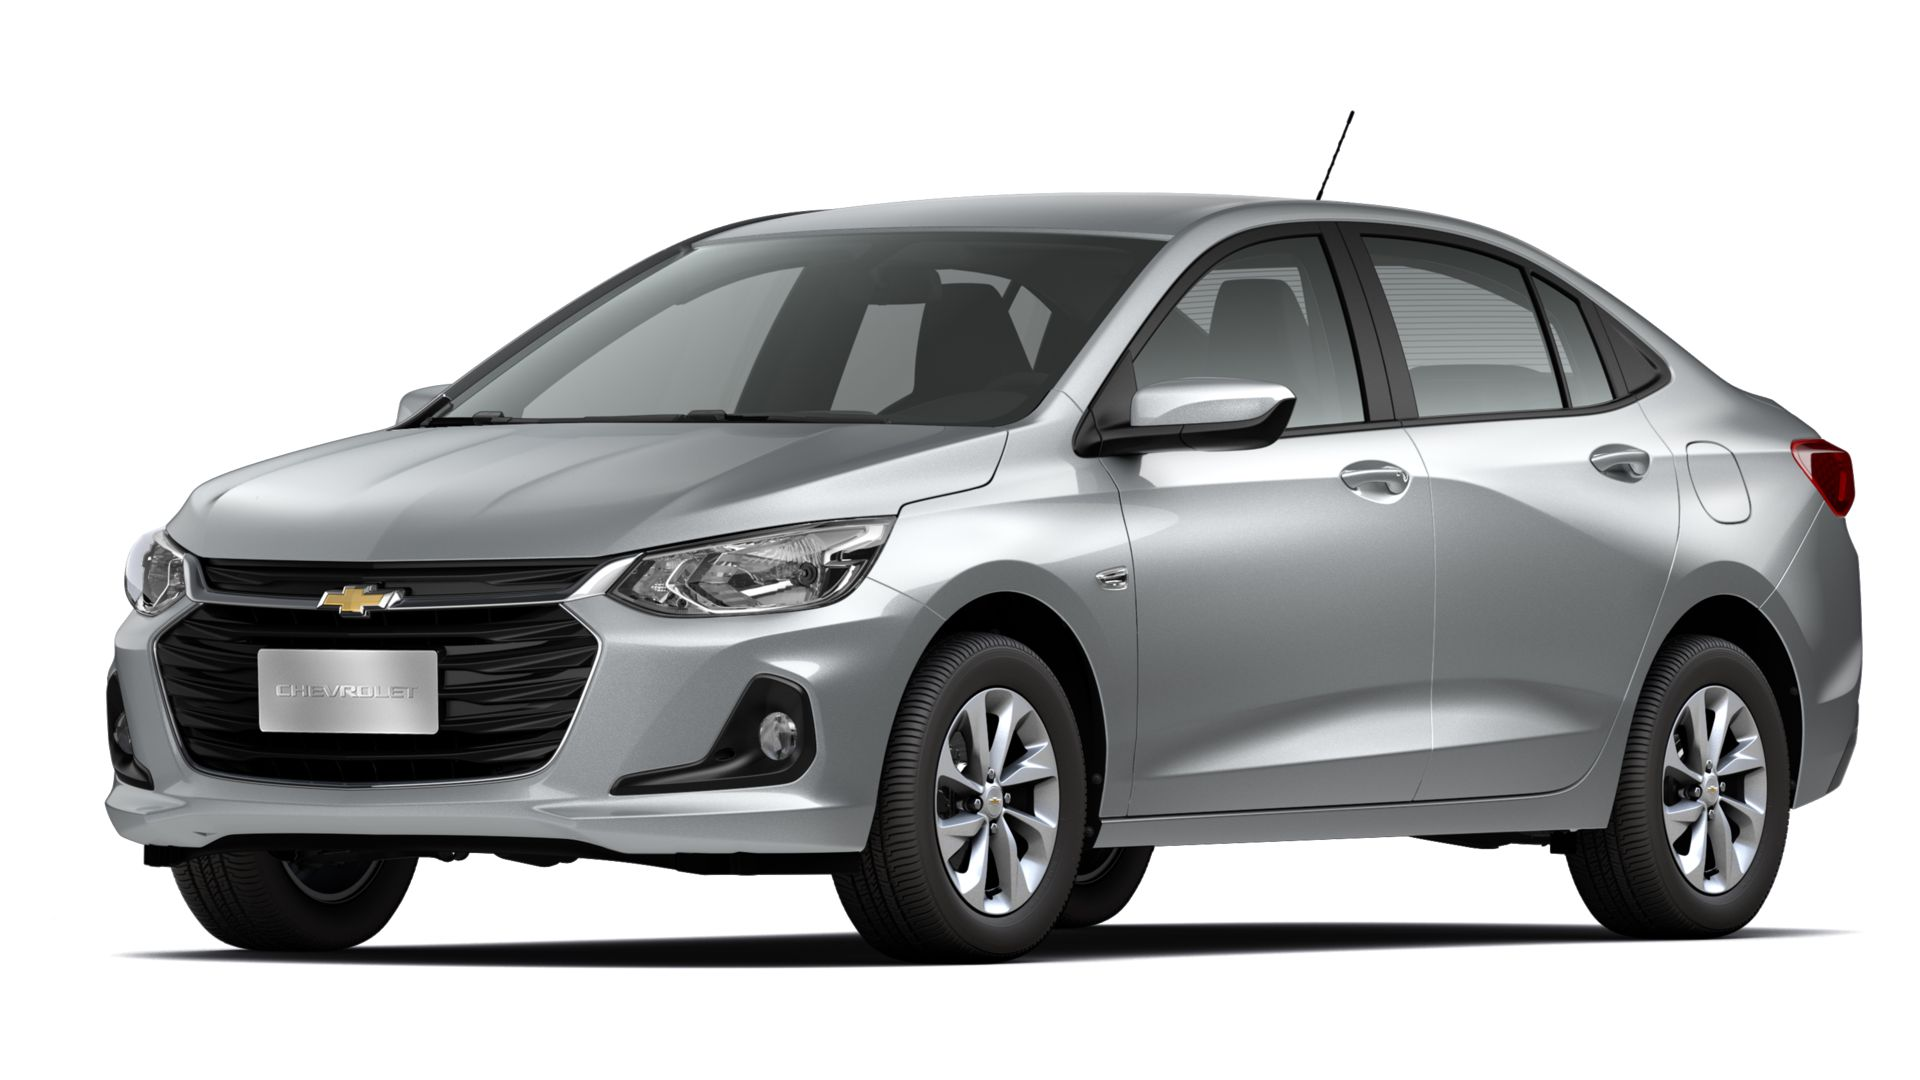 CHEVROLET ONIX PLUS LTZ 1.0 TURBO 2020